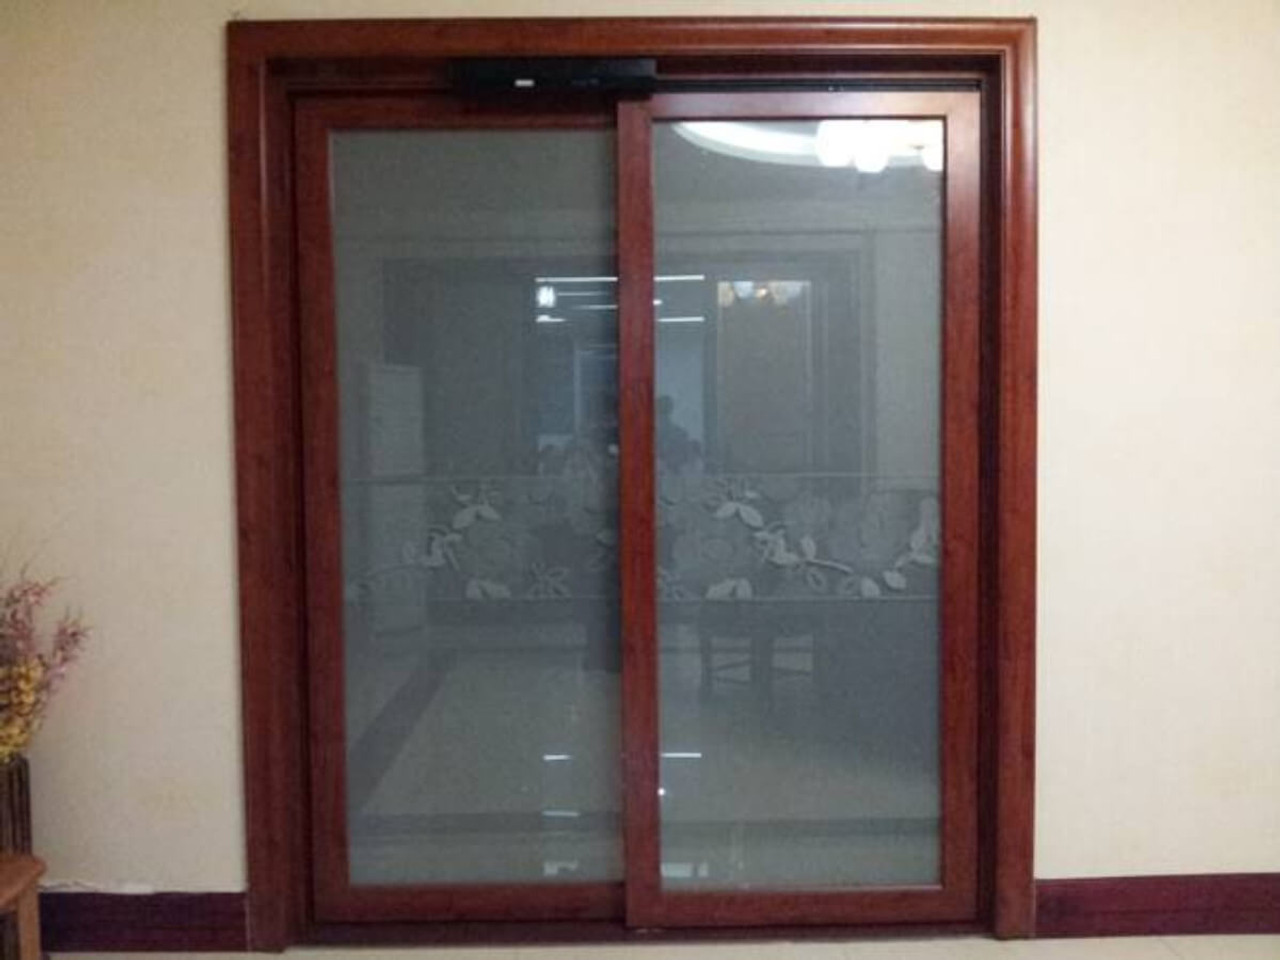 Autoslide motorized sliding glass door are unobtrusive and allow pets and people to come and go